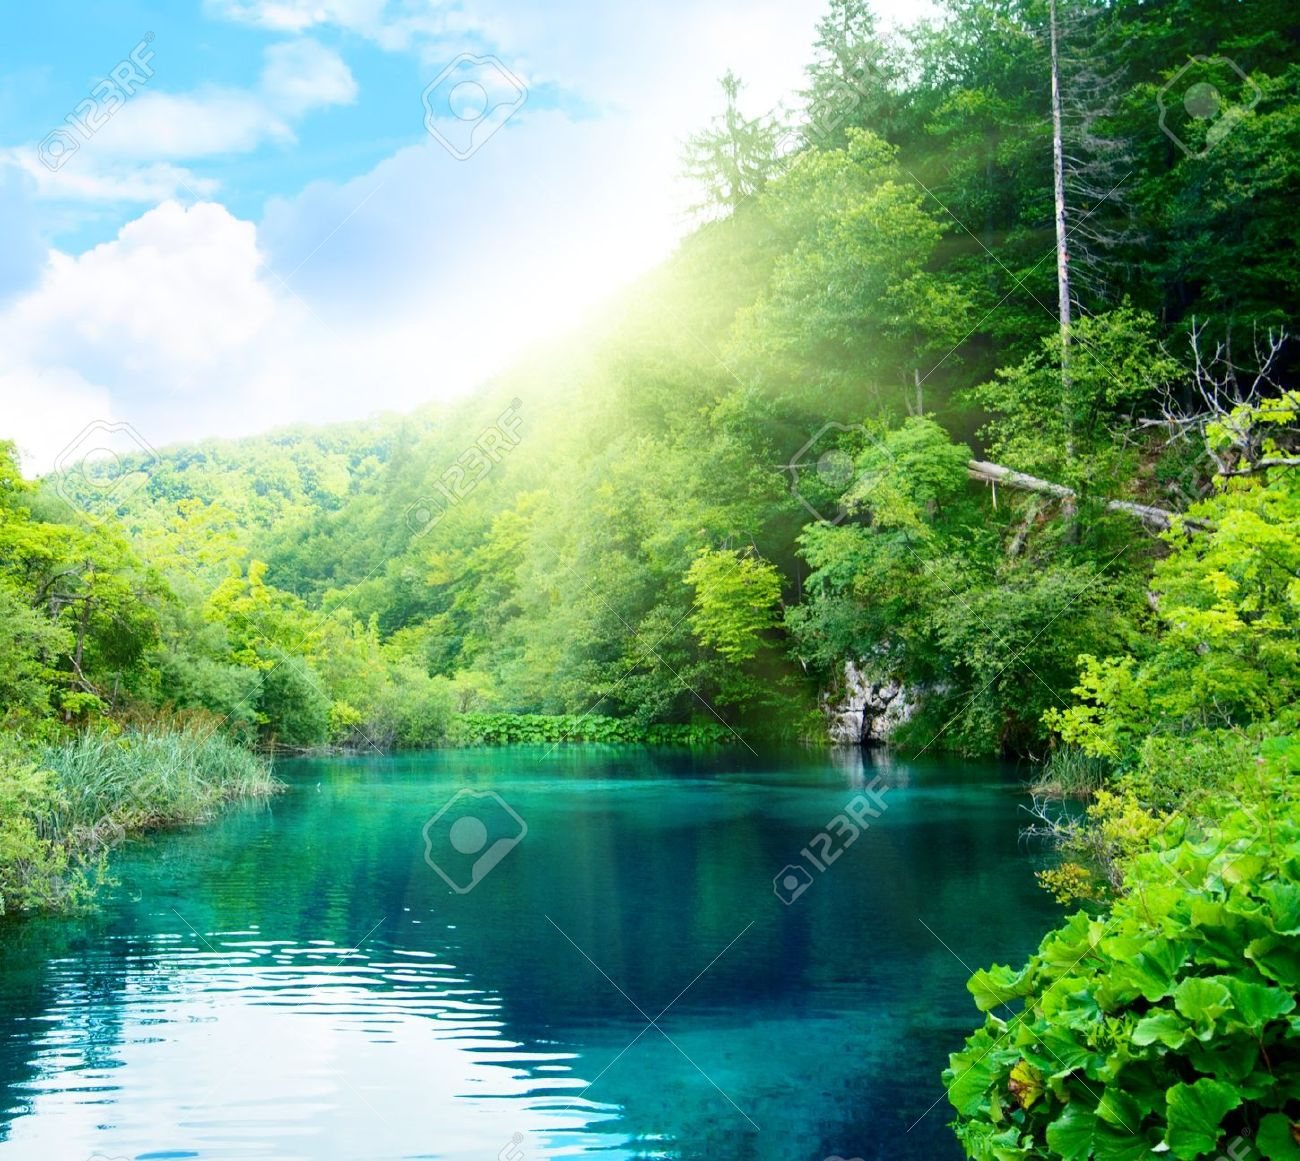 lake in deep forest - 4141737